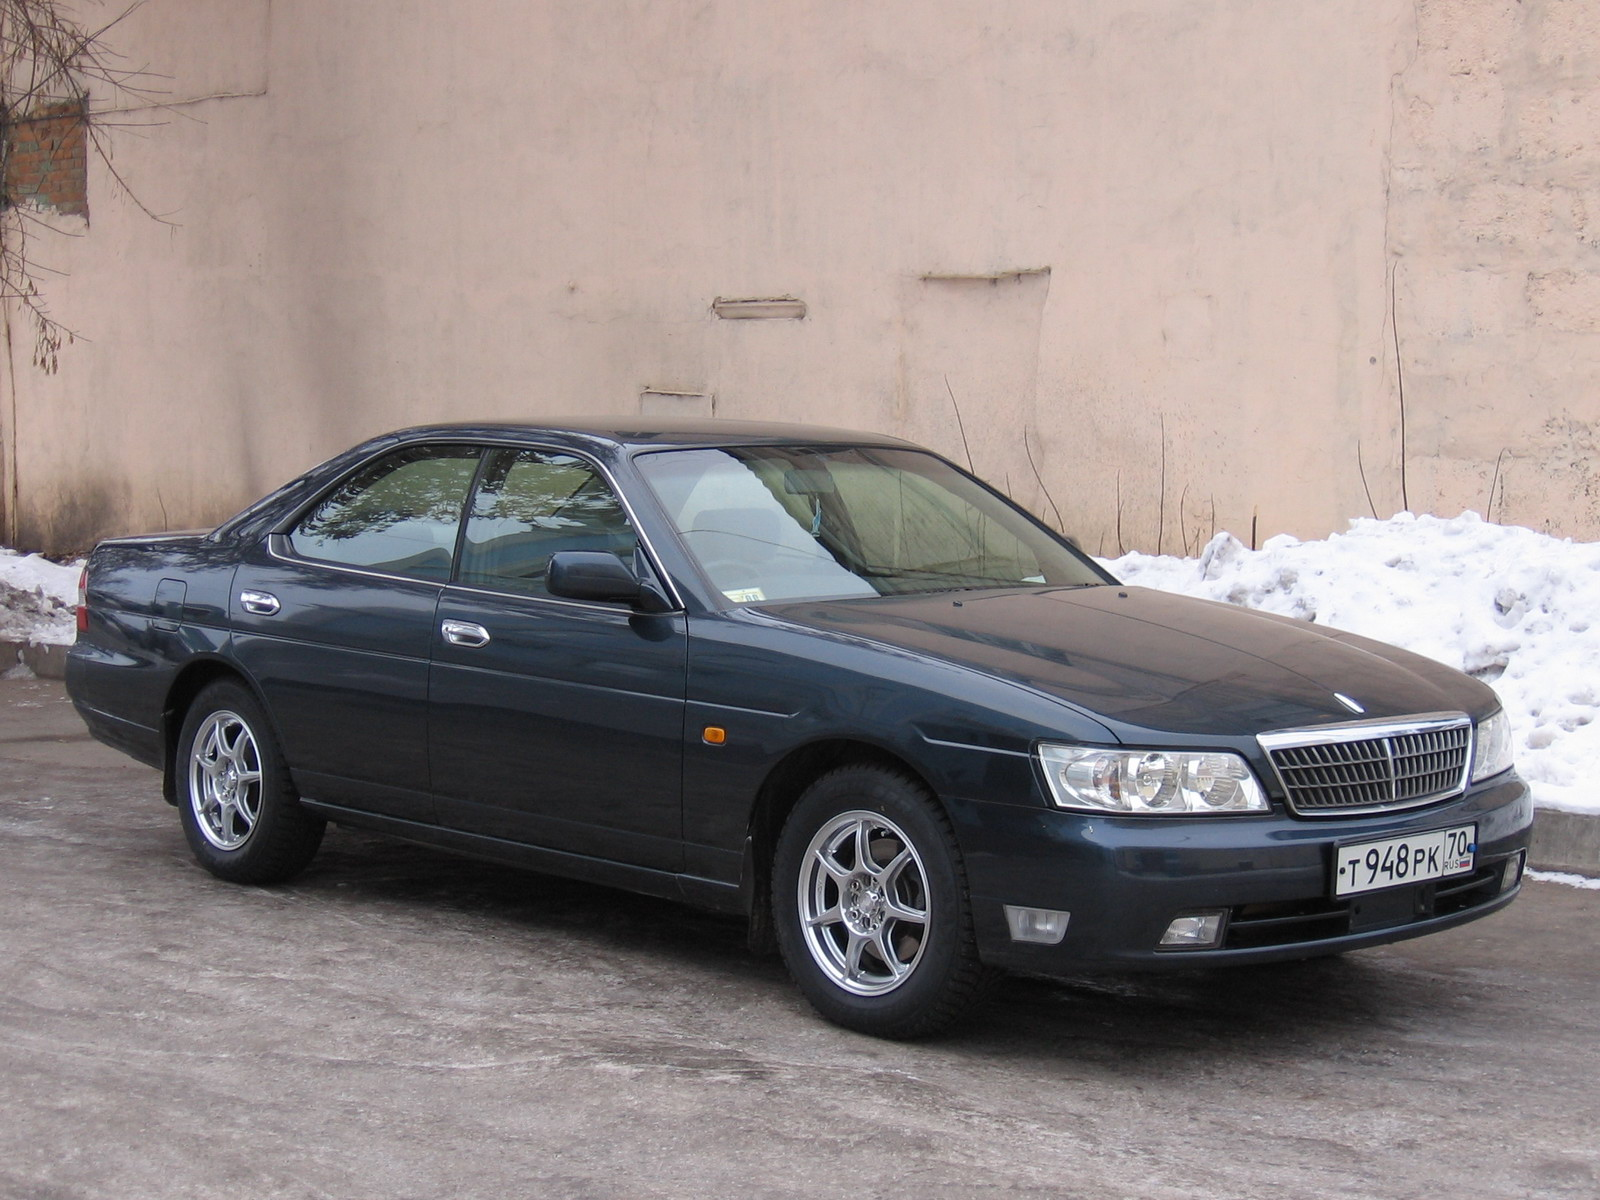 1992 Nissan Laurel #7